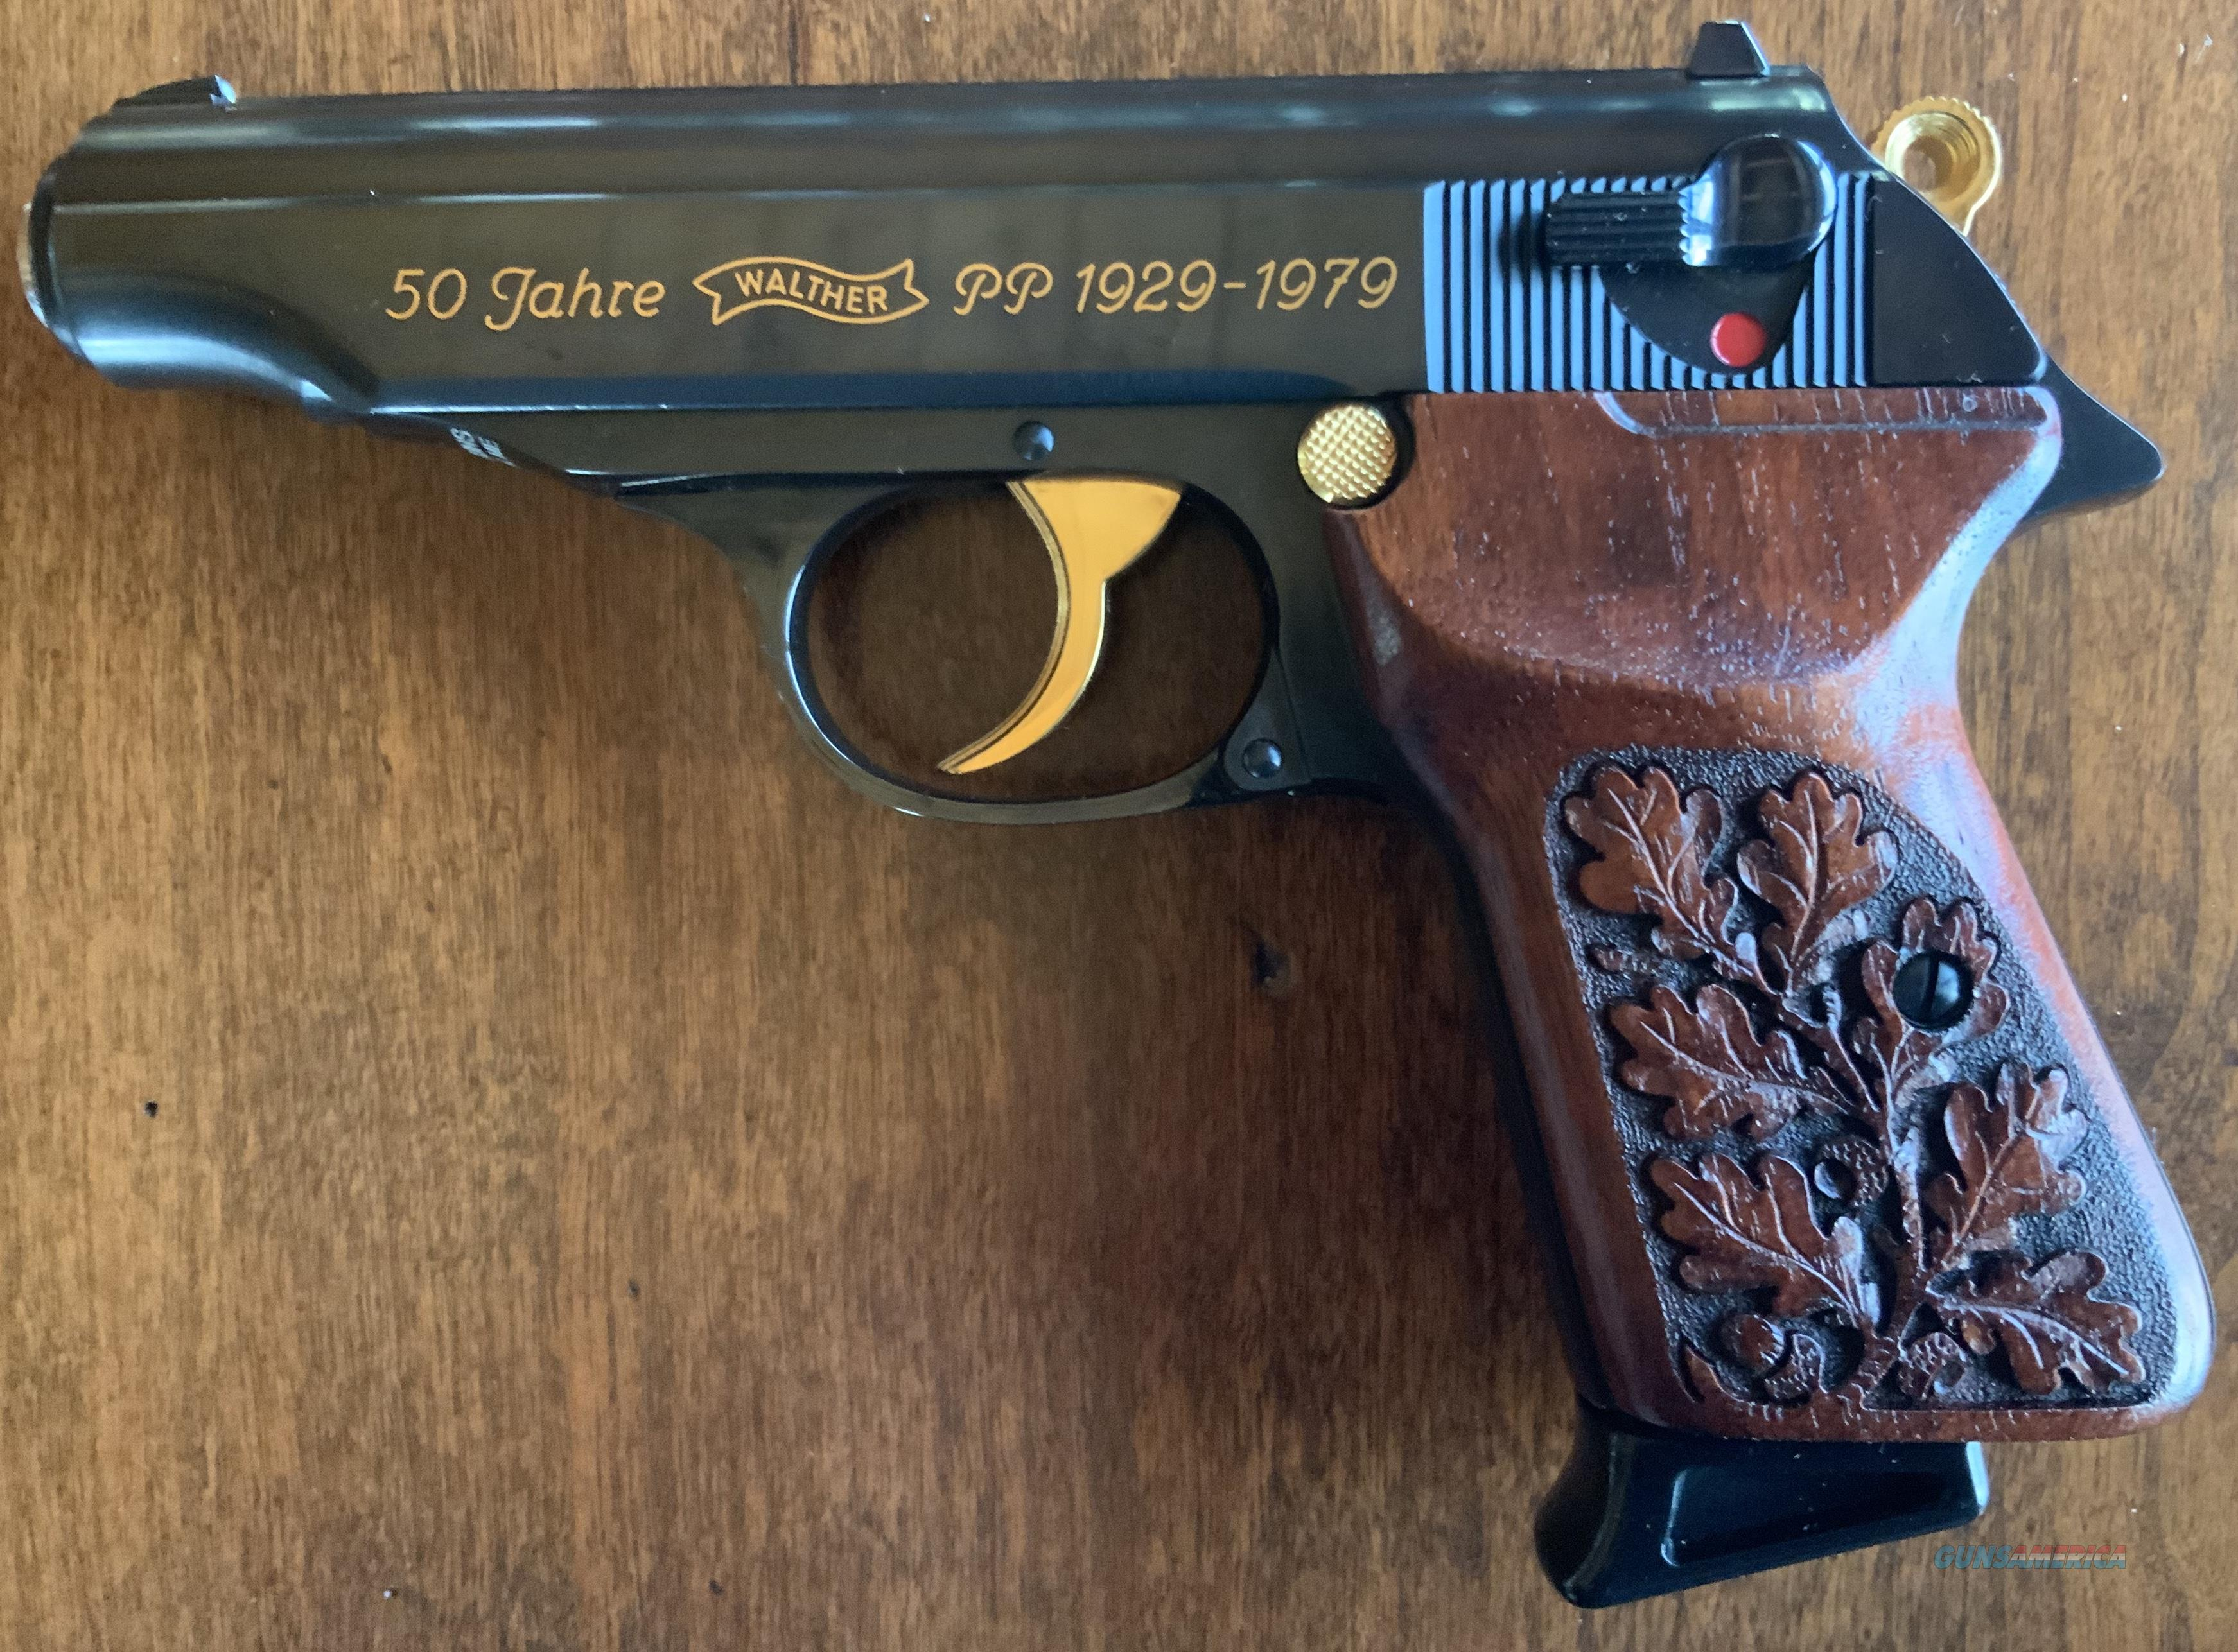 WTS Walther 50 Jahre Walther .380/9mm kurz  Guns > Pistols > Walther Pistols > Post WWII > PPK Series